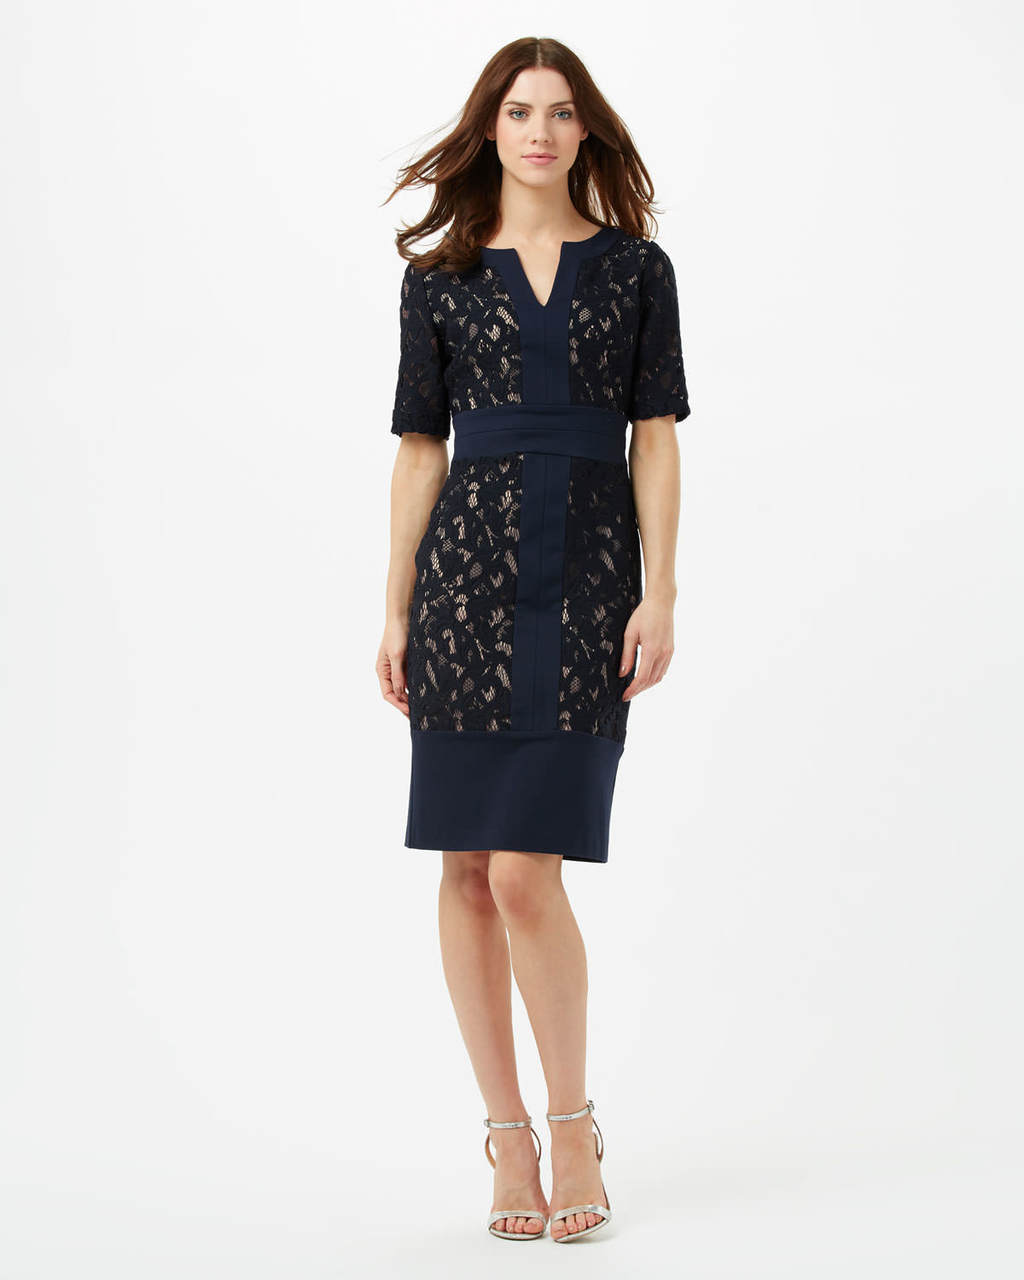 Luisa Lace Ponte Dress - style: shift; neckline: v-neck; fit: tailored/fitted; waist detail: belted waist/tie at waist/drawstring; predominant colour: navy; secondary colour: stone; length: just above the knee; fibres: viscose/rayon - stretch; occasions: occasion; sleeve length: short sleeve; sleeve style: standard; texture group: lace; pattern type: fabric; pattern size: standard; pattern: patterned/print; embellishment: lace; season: s/s 2016